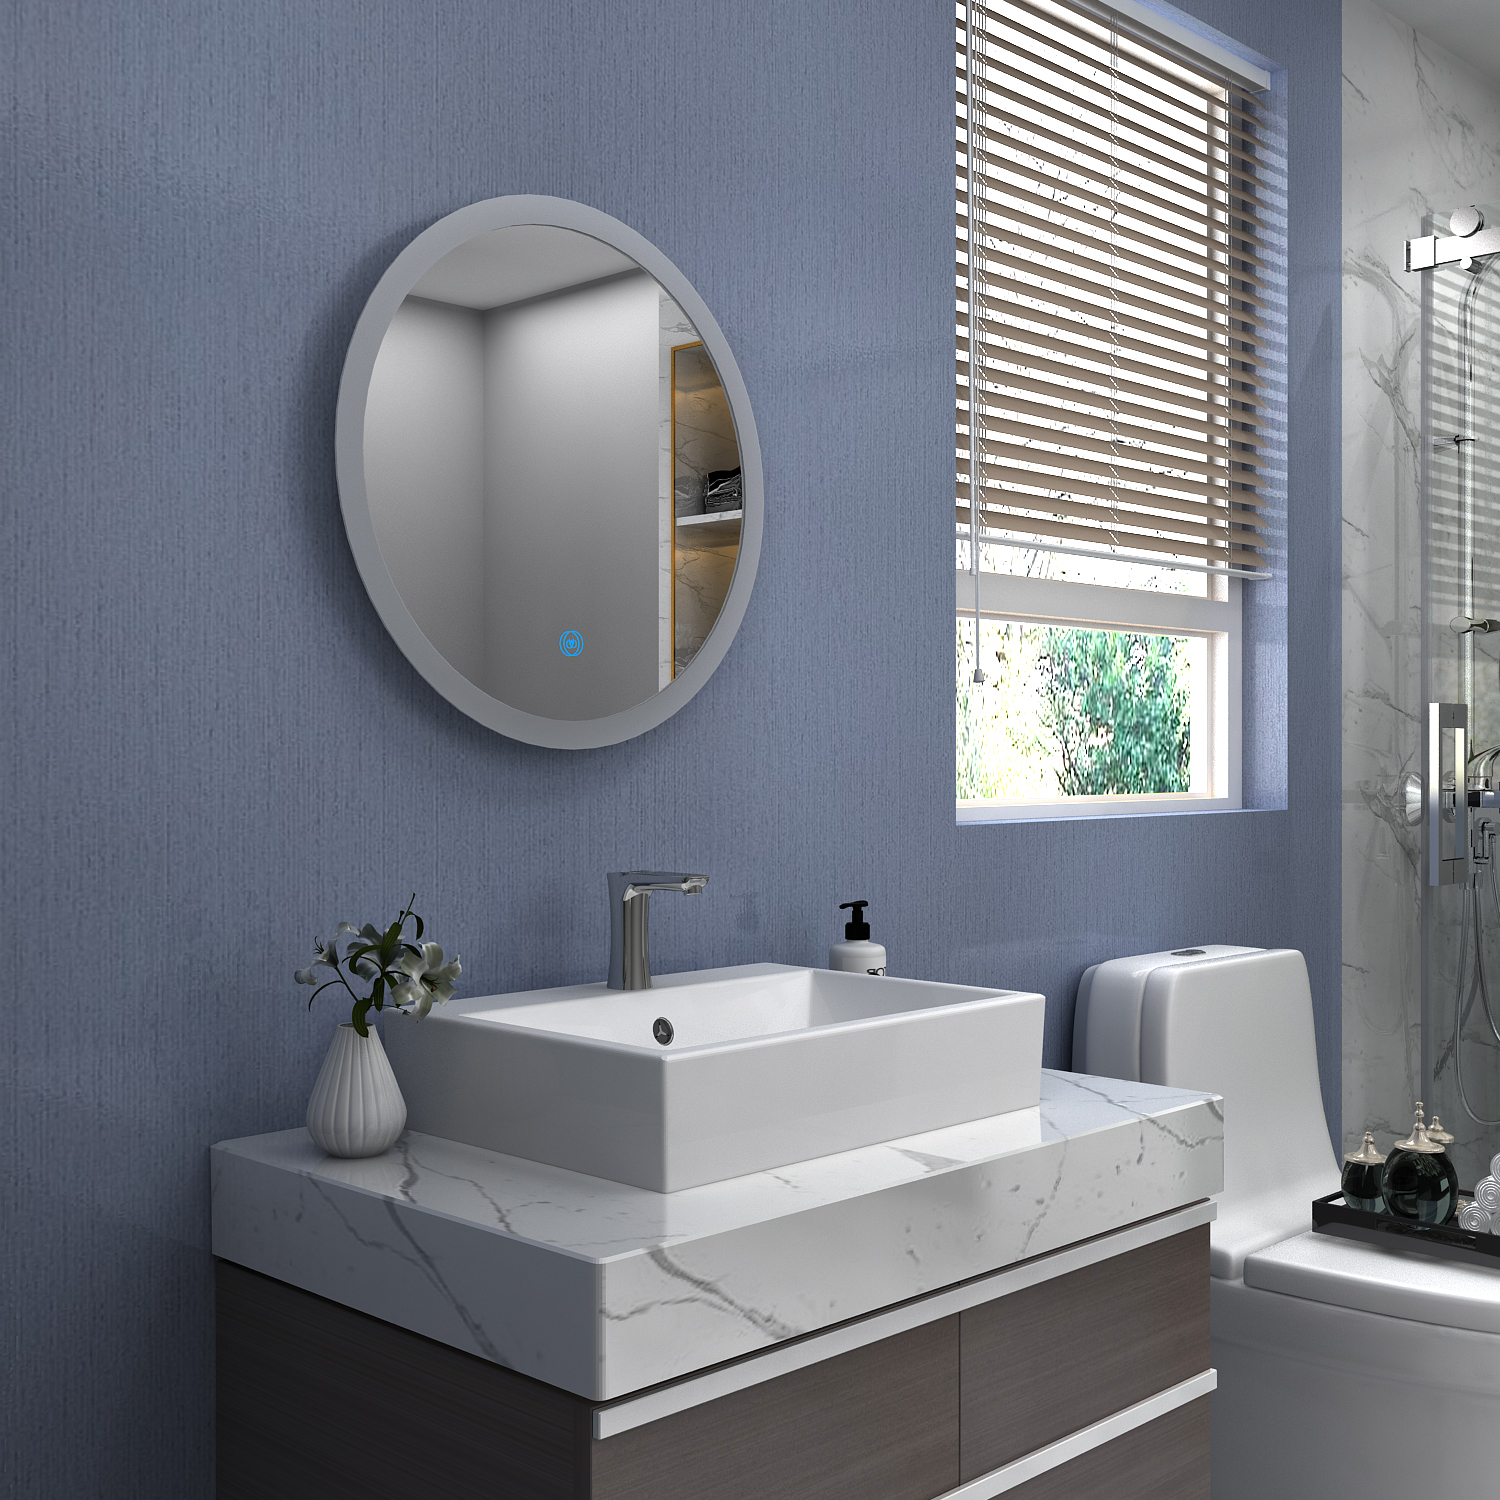 Lighted Bathroom Wall Mirror Large: Bathroom LED Illuminated Mirror Touch Switch Large Wall